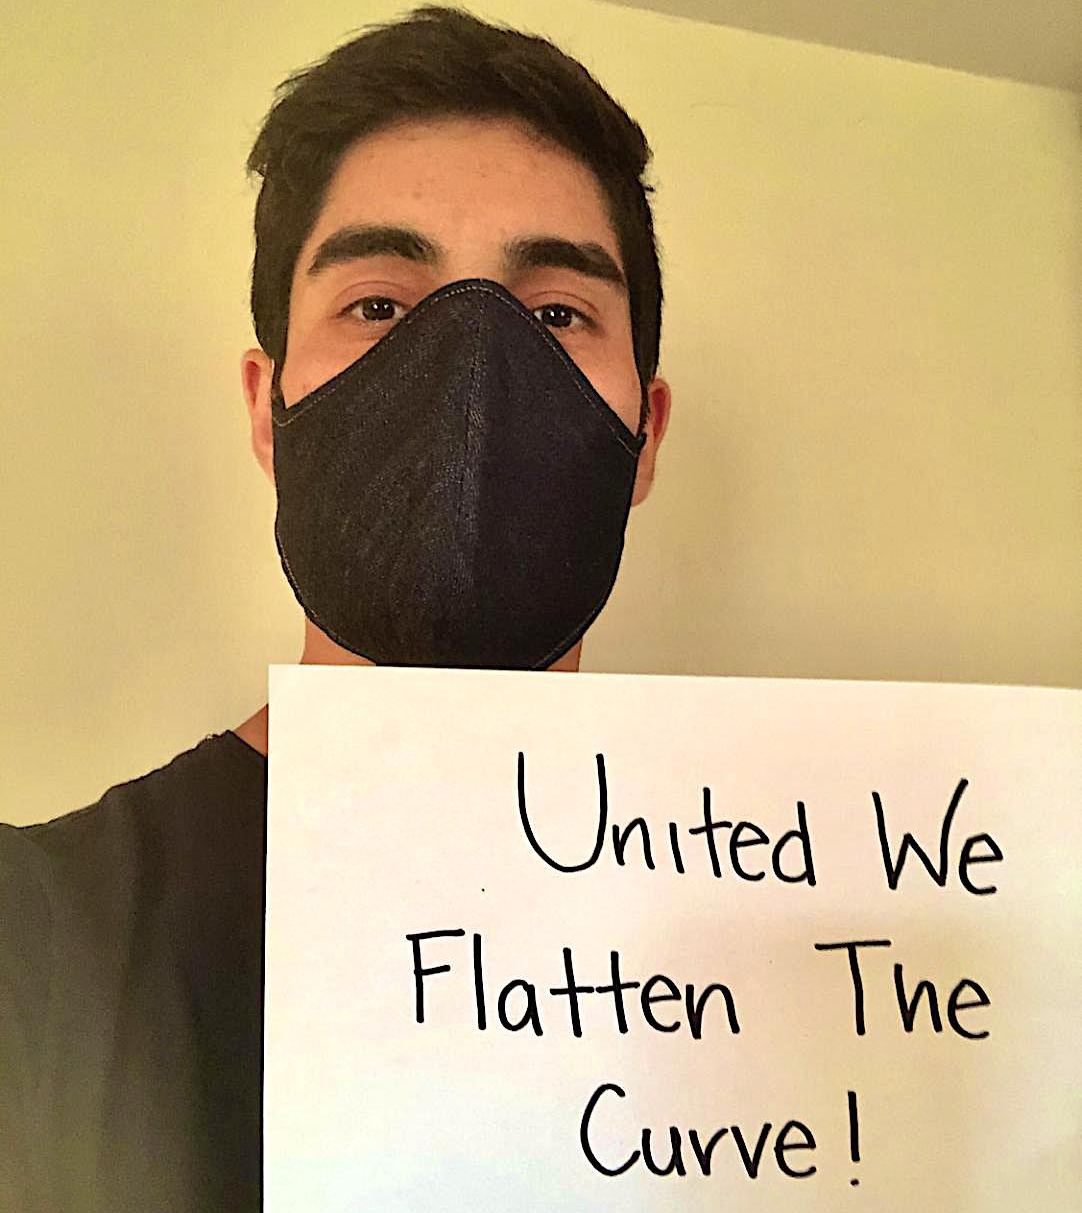 Engineering student Eric Estrada was able to get 80 face masks made and donated to members of the San Diego Blind Community Center during the COVID-19 pandemic.